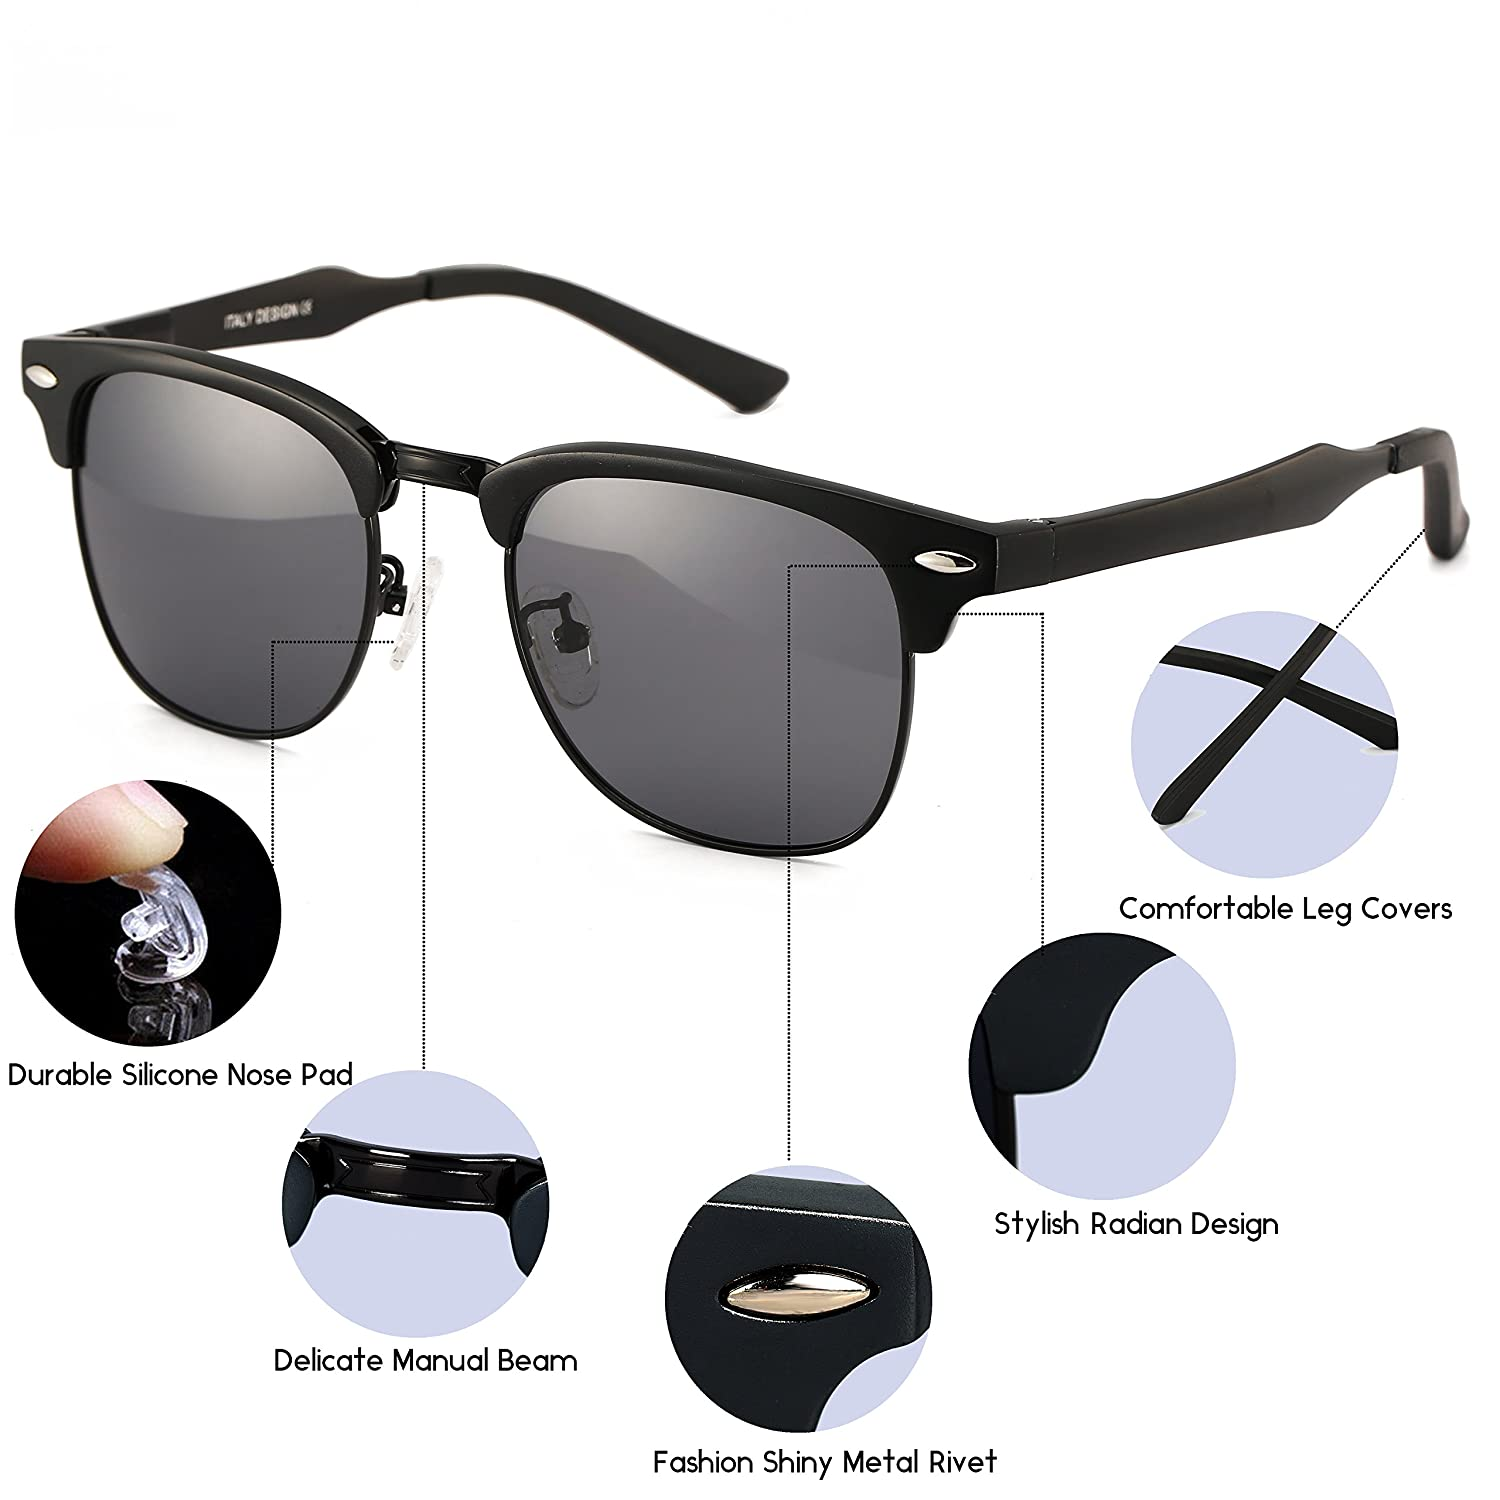 fcda0d6872 Amazon.com  Dollger Classic Square Half Frame Sunglasses Mens Black Horn  Rimmed Glasses for UV Eye Protection  Clothing